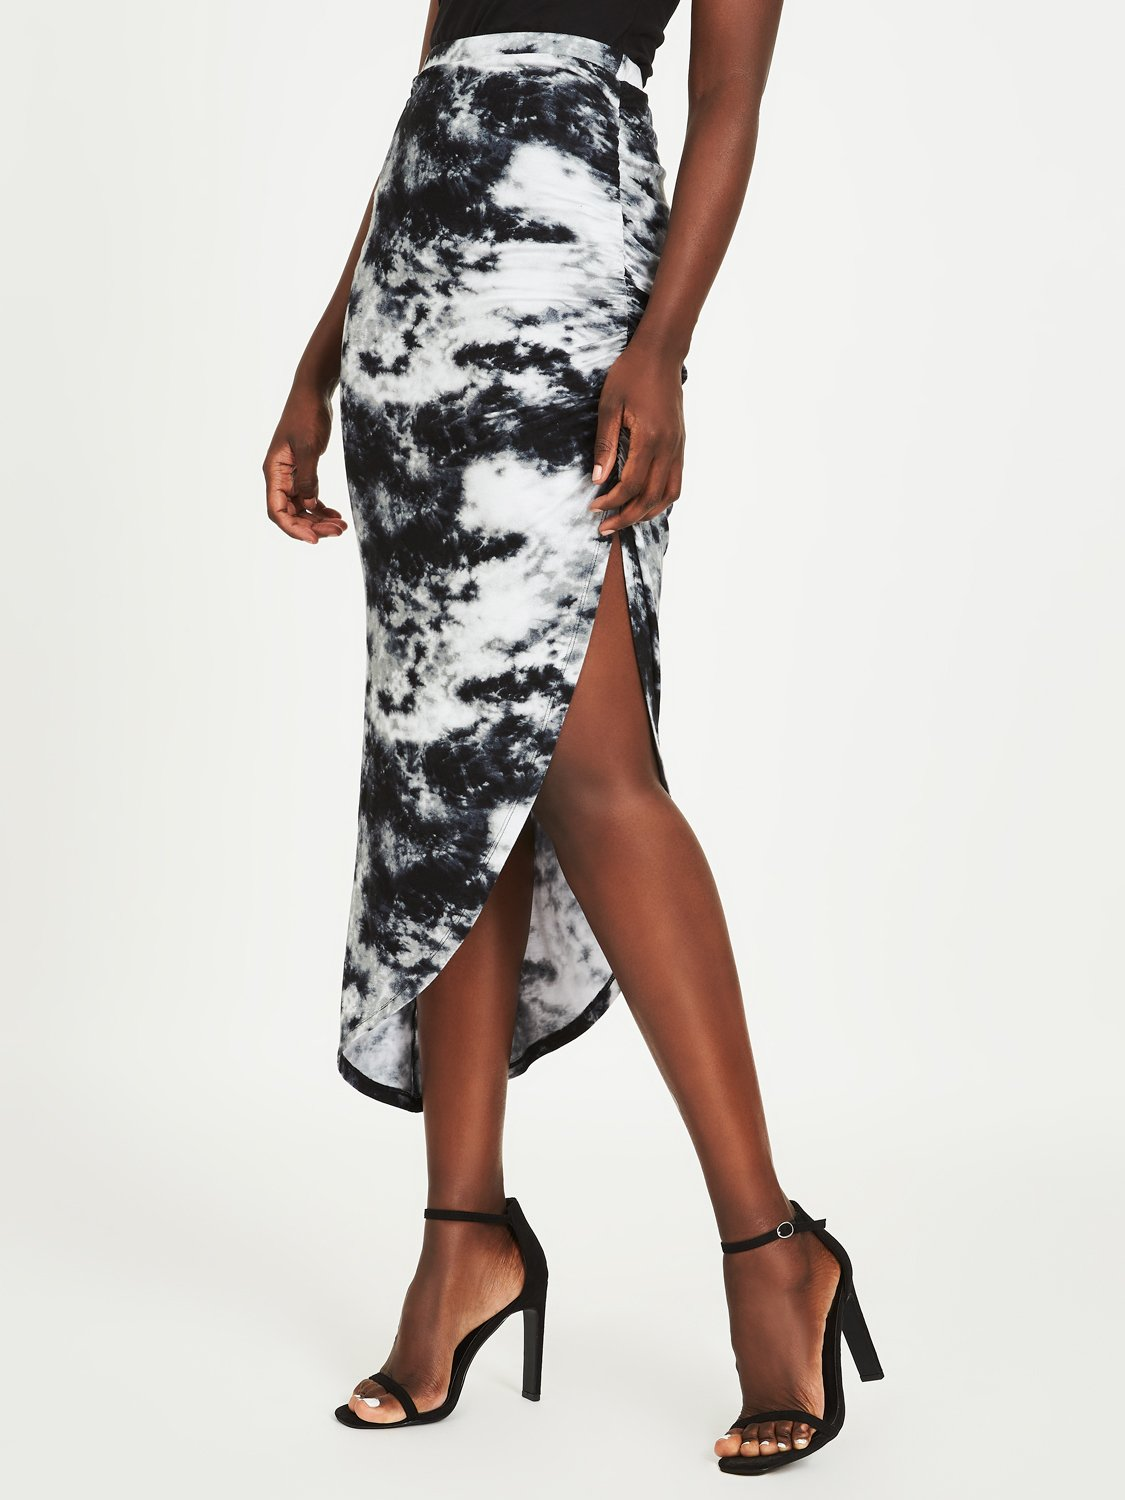 Sheered Asymmetrical Tie-Dye Skirt